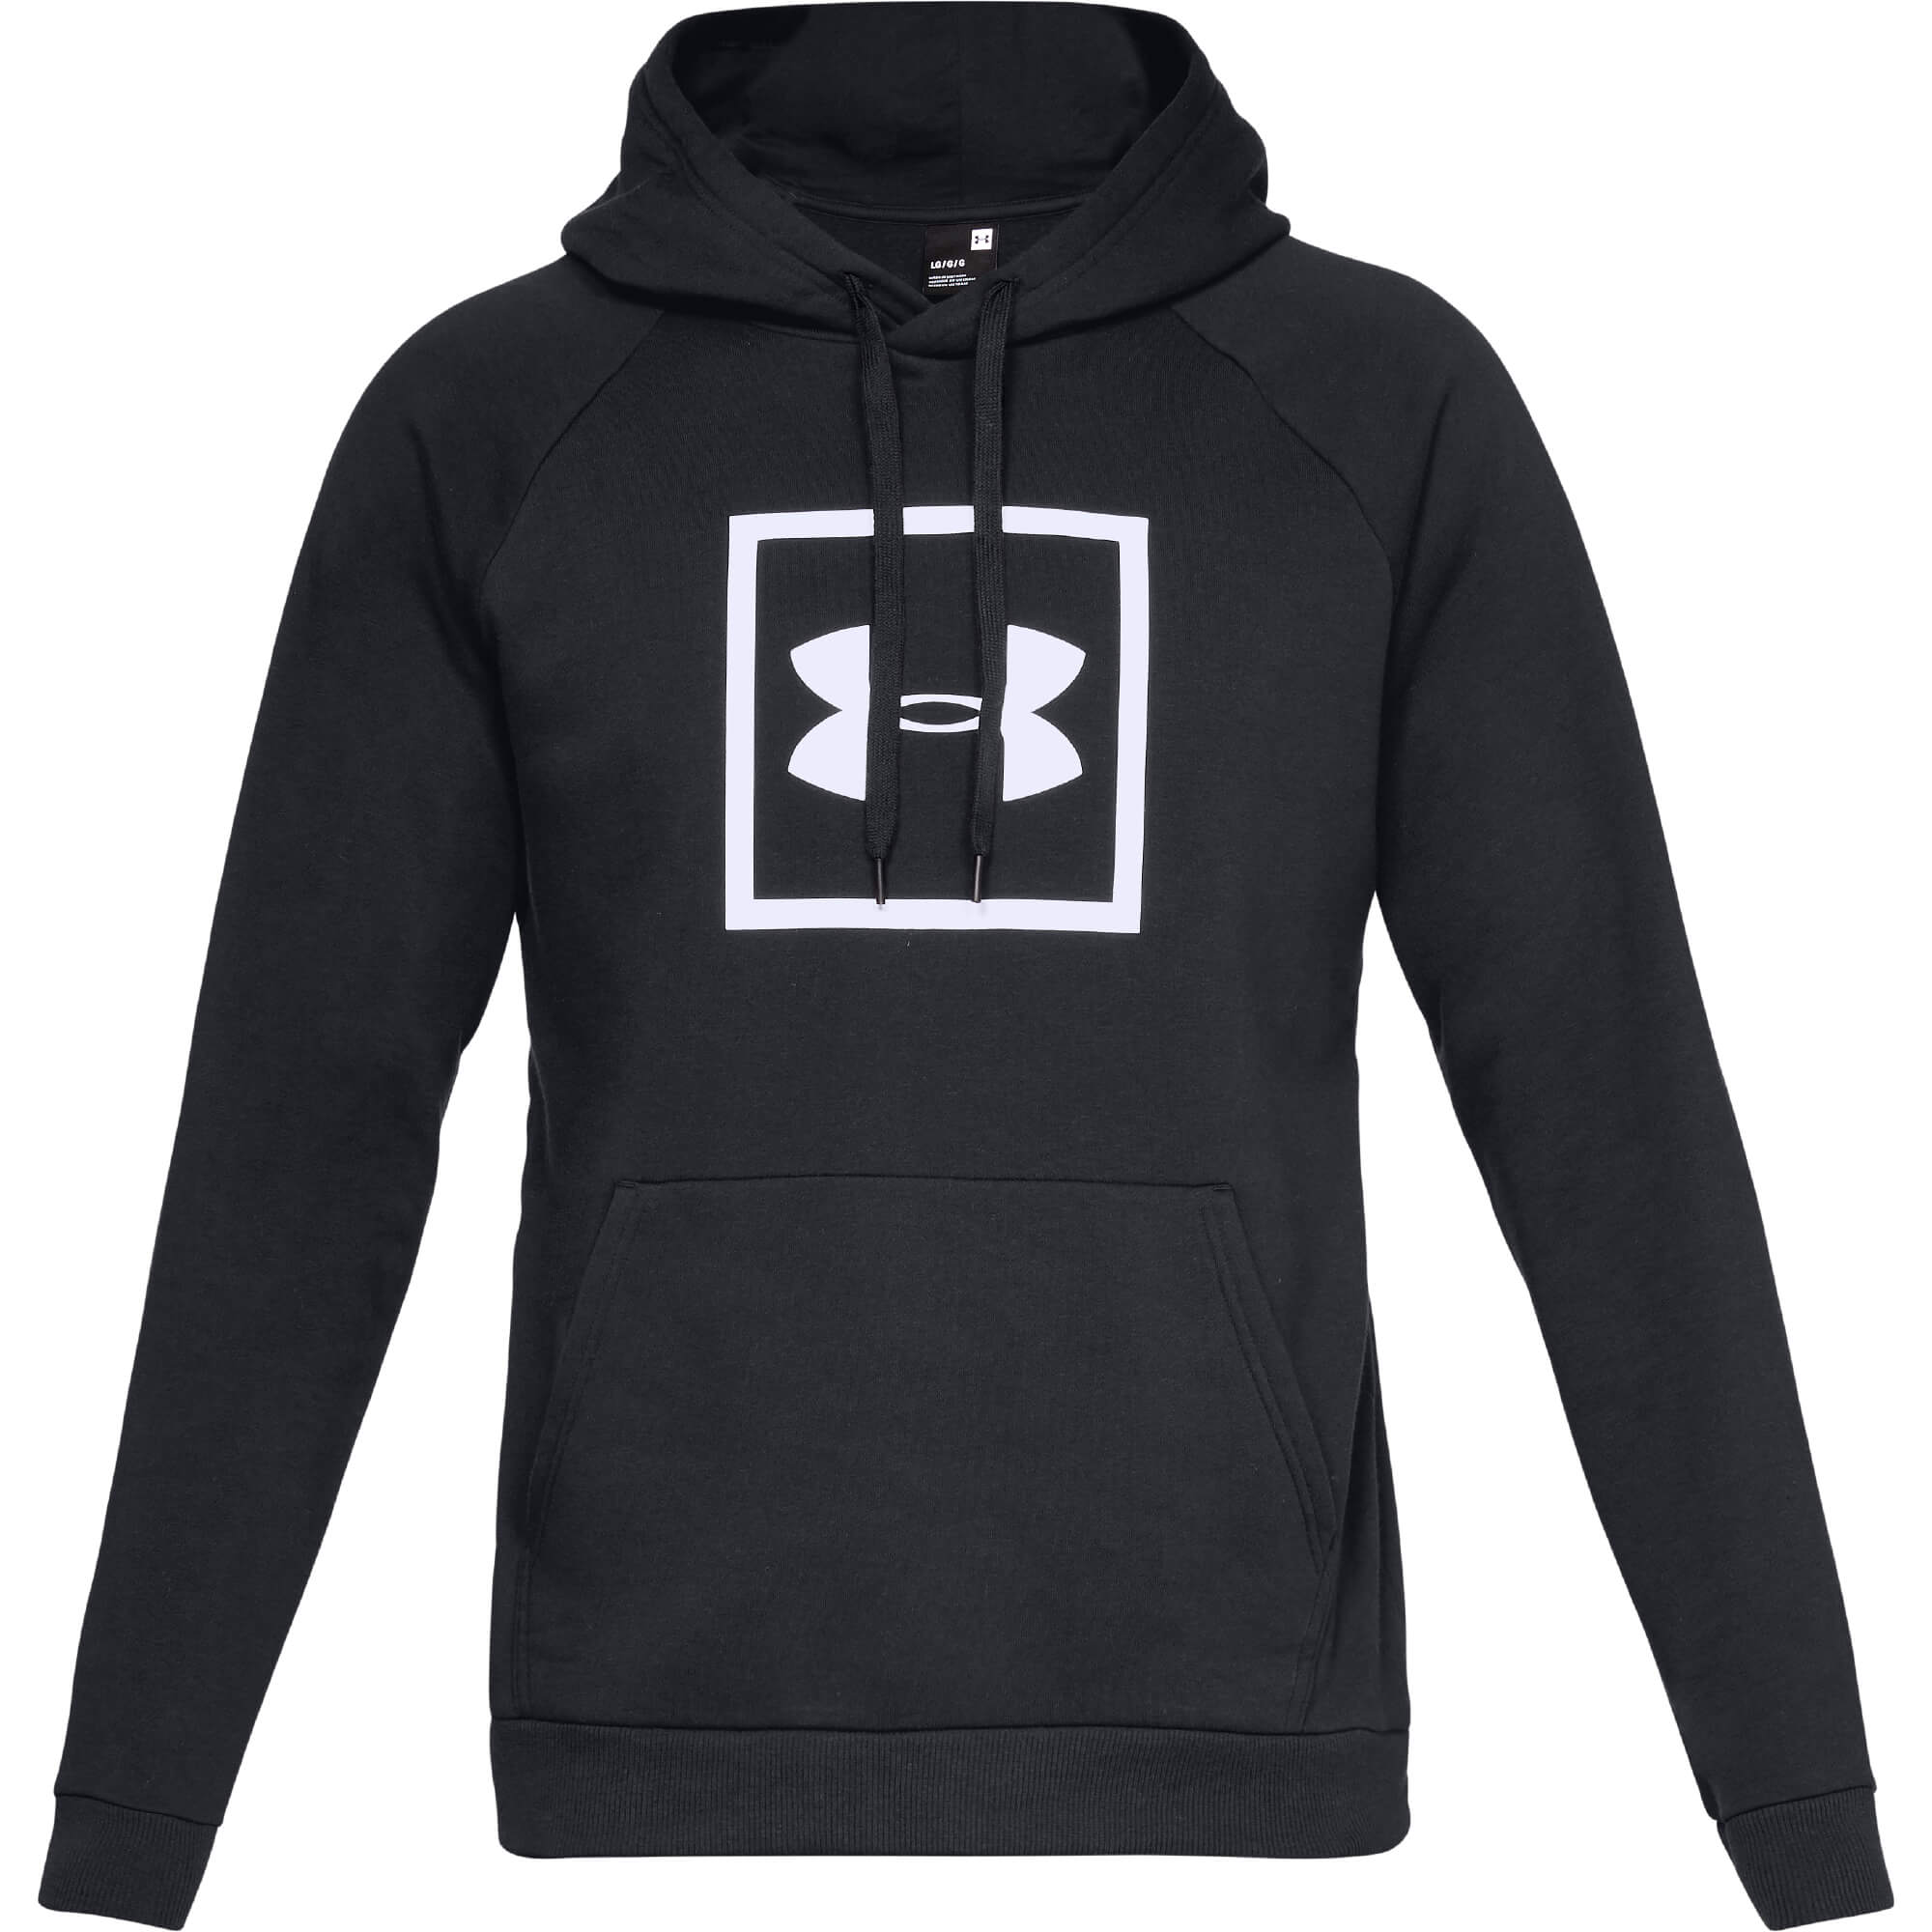 Under Armour Puloverji RIVAL FLEECE LOGO HOODY Črna - Ceneje.si 30d4439fa1